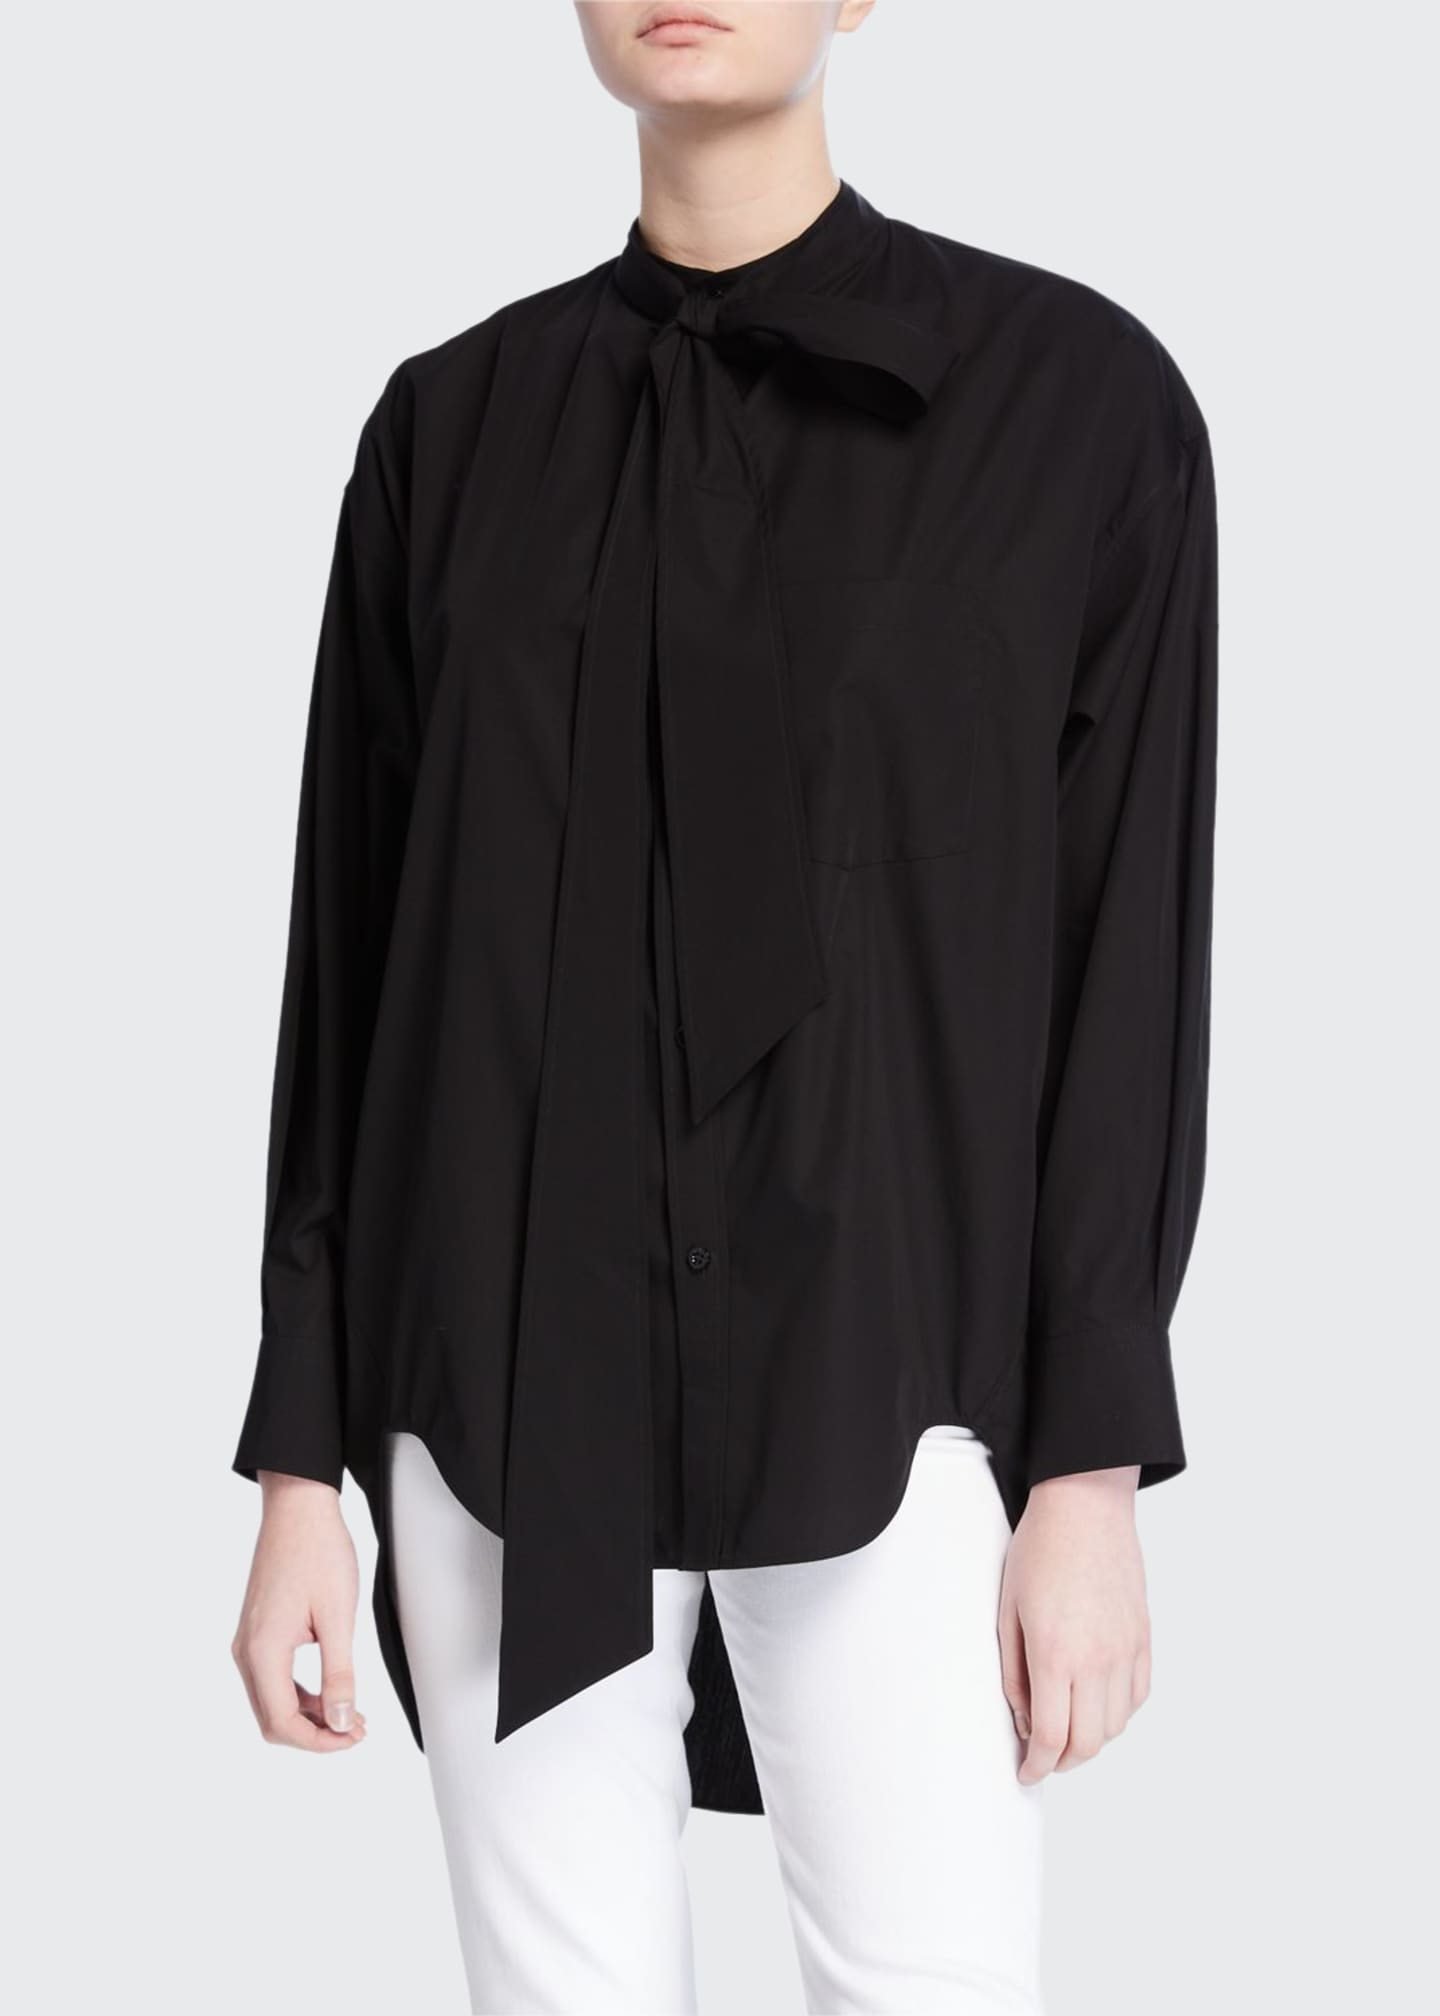 Balenciaga Tie-Neck Swing Top